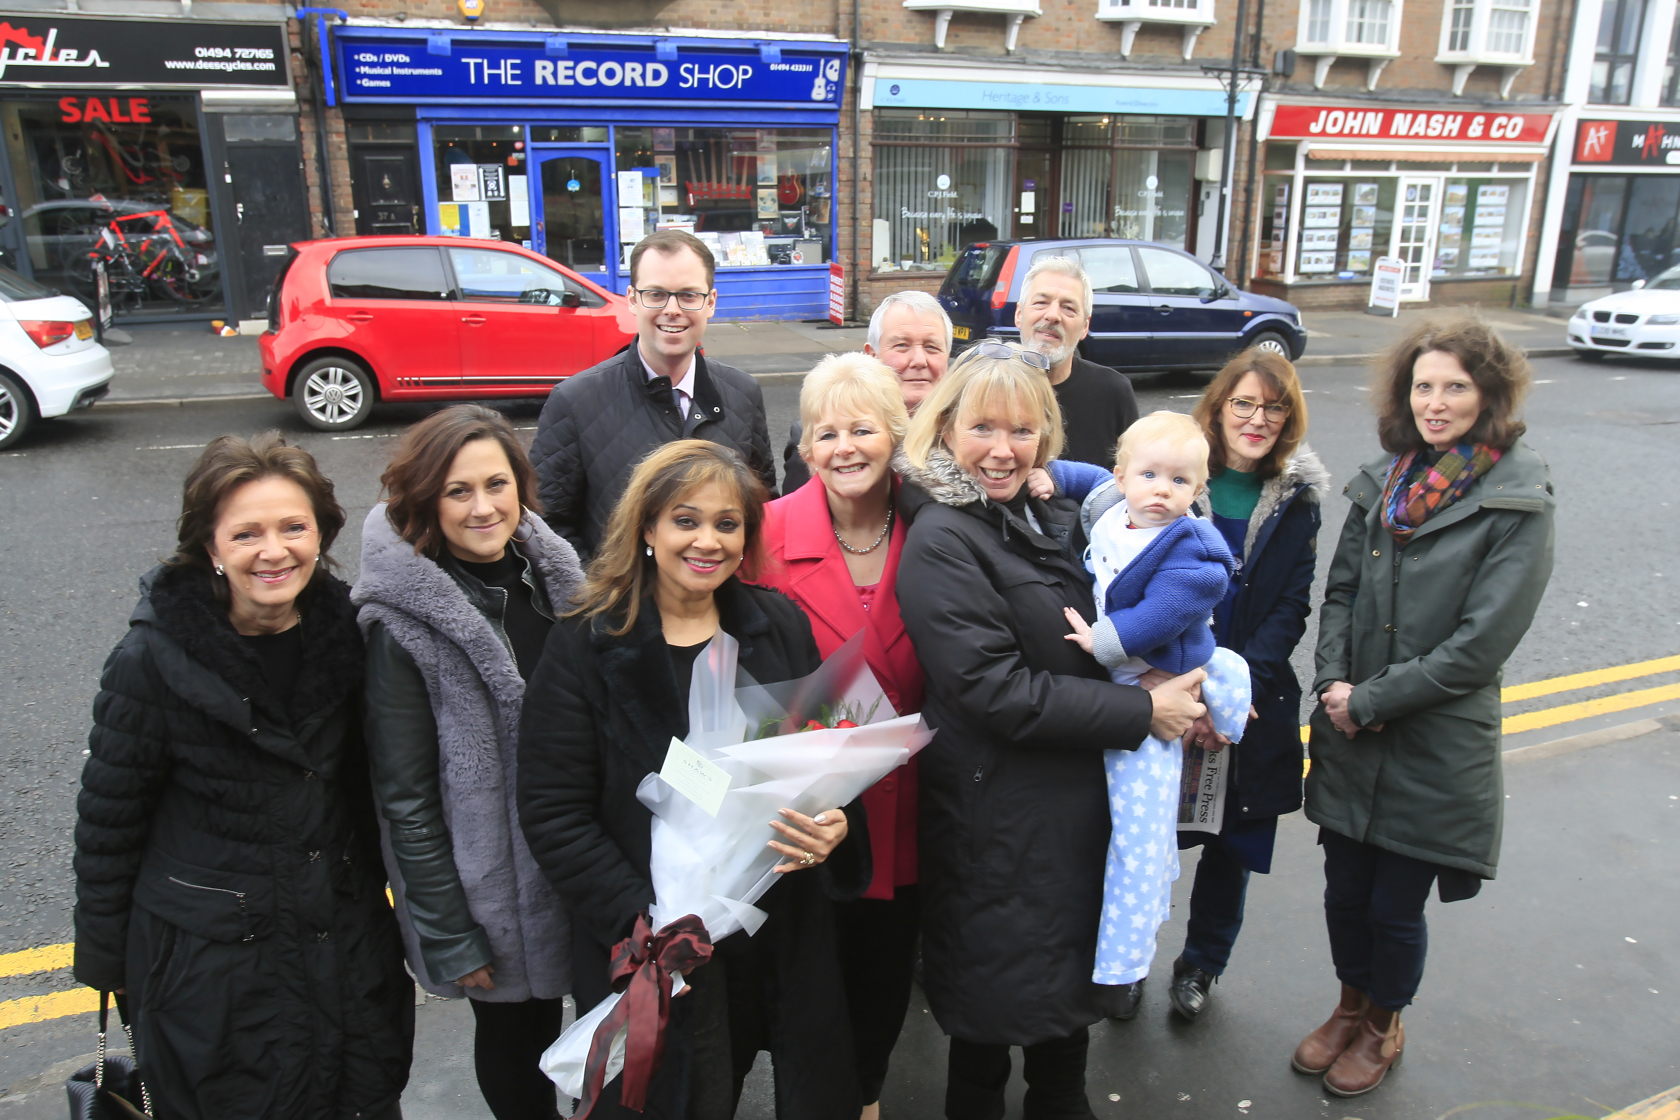 Community leaders launch campaign to revive town's High Street